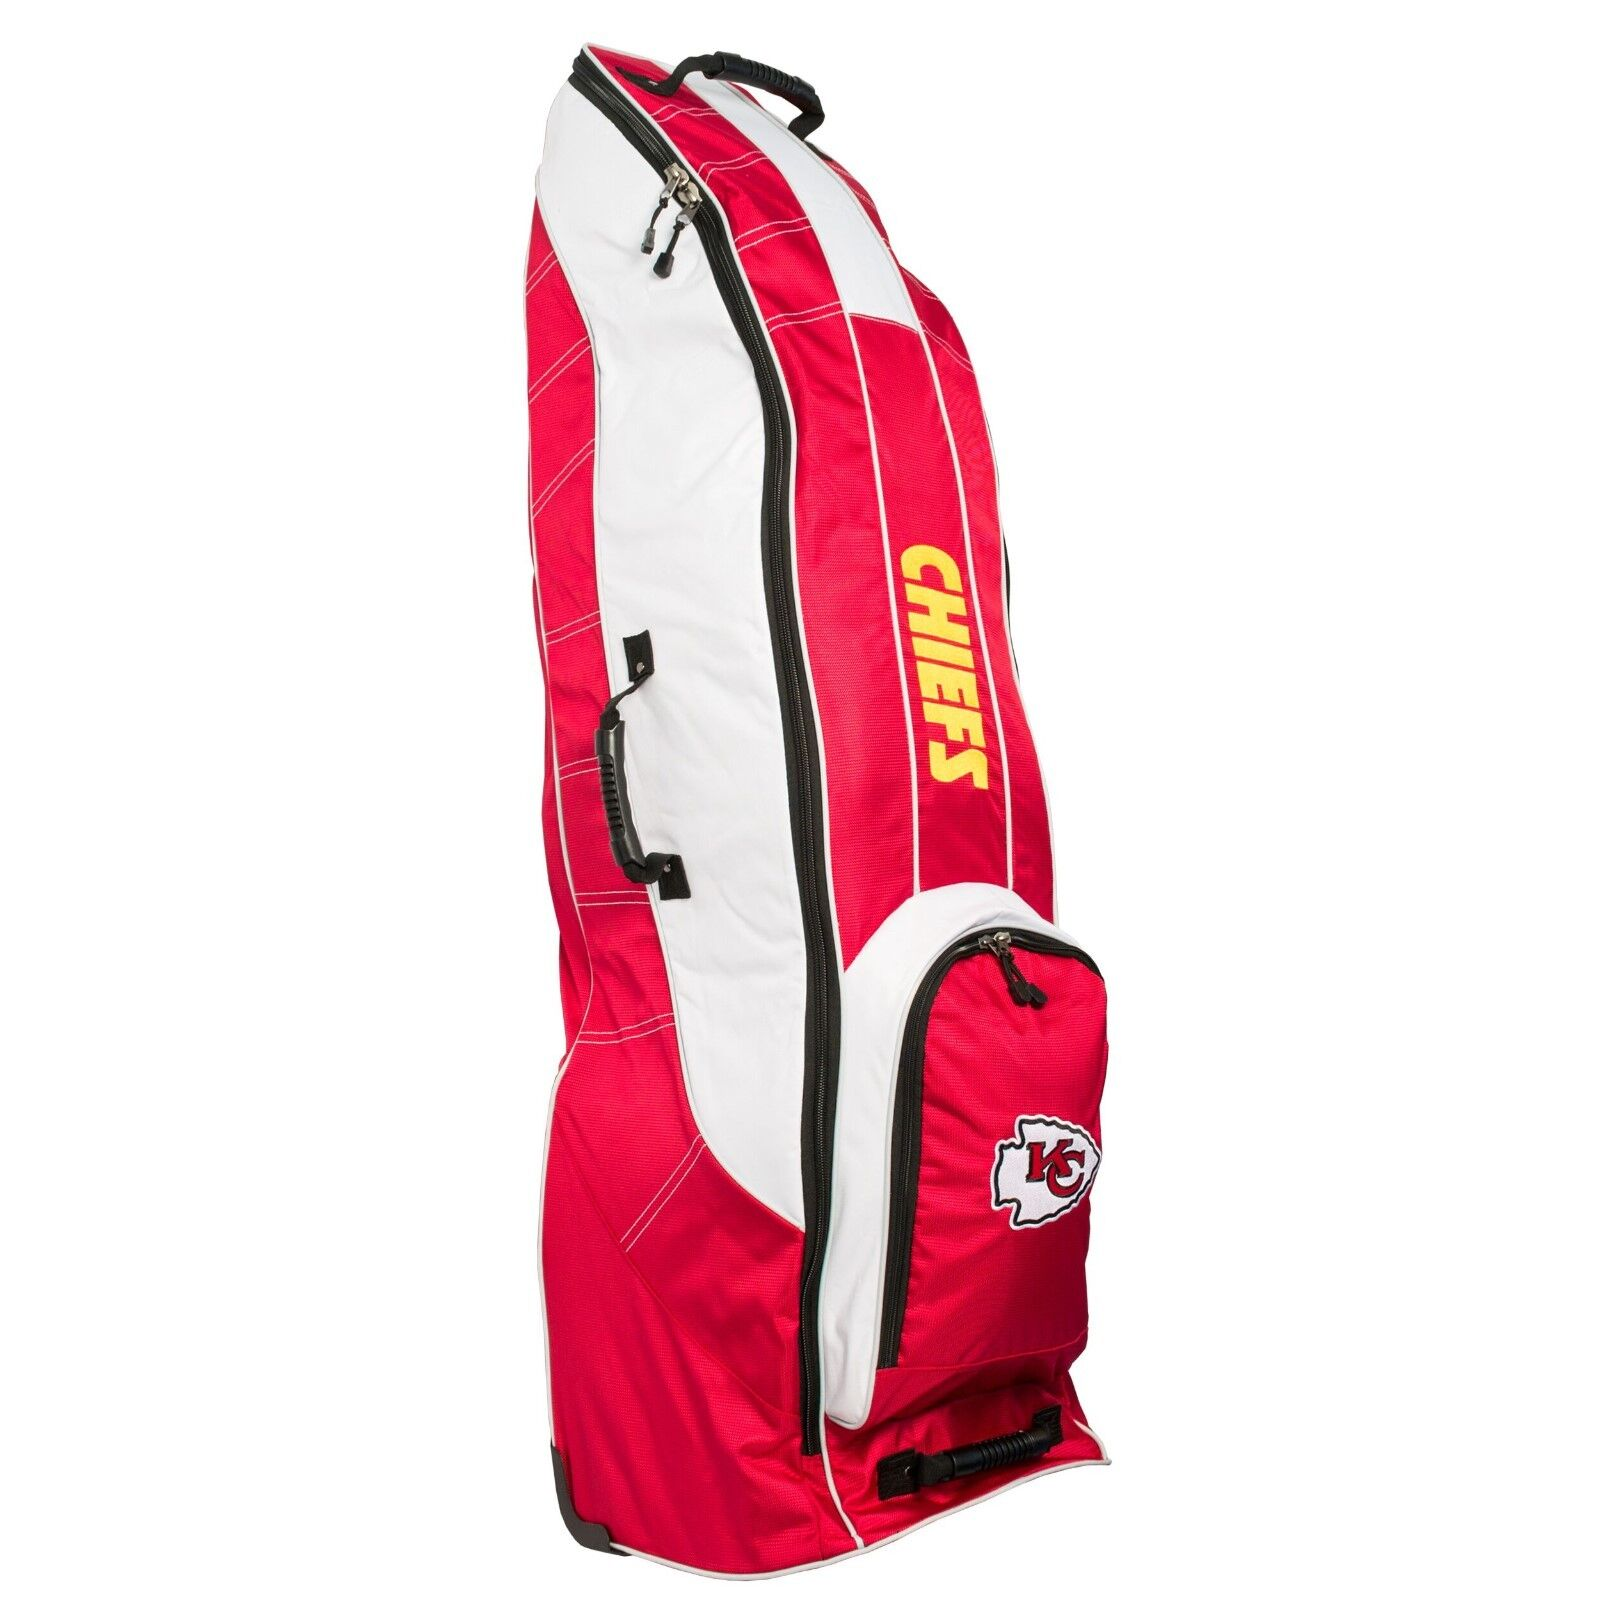 new kansas city chiefs golf bag travel